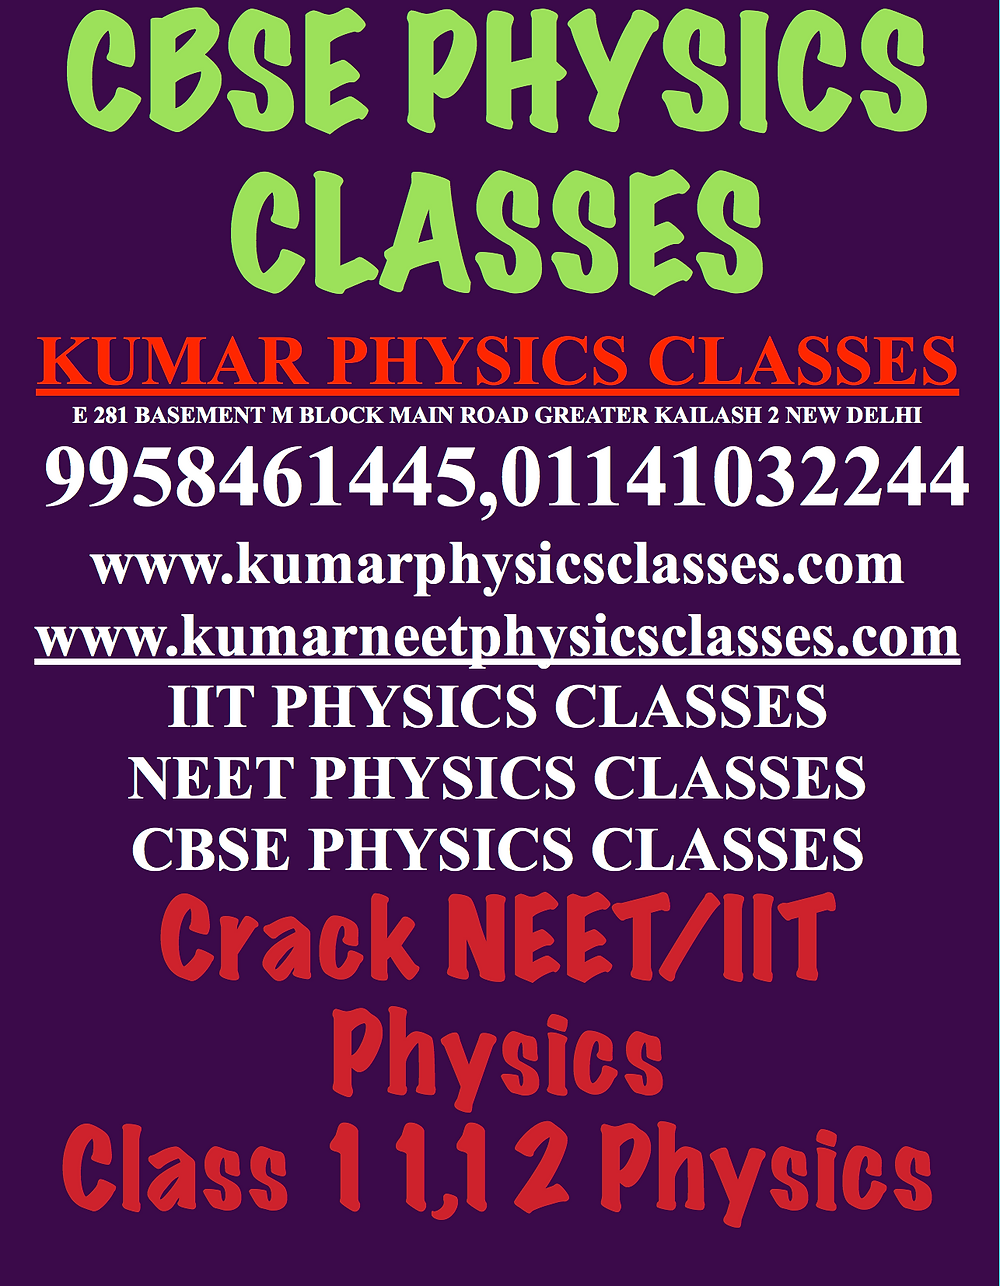 Contact Physics Professional Classes Revise As Much As Possible ,Write Derivations Many Times And Focus On Physics Concepts KUMAR PHYSICS CLASSES E 281 BASEMENT M BLOCK MAIN ROAD GREATER KAILASH 2 NEW DELHI 9958461445,01141032244 www.kumarphysicsclasses.com www.kumarneetphysicsclasses.com IIT PHYSICS CLASSES NEET PHYSICS CLASSES CBSE PHYSICS CLASSES Crack NEET/IIT Physics Class 11,12 Physics Physics classes in delhi   Kumar Physics classes-www.kumarphysicsclasses.com